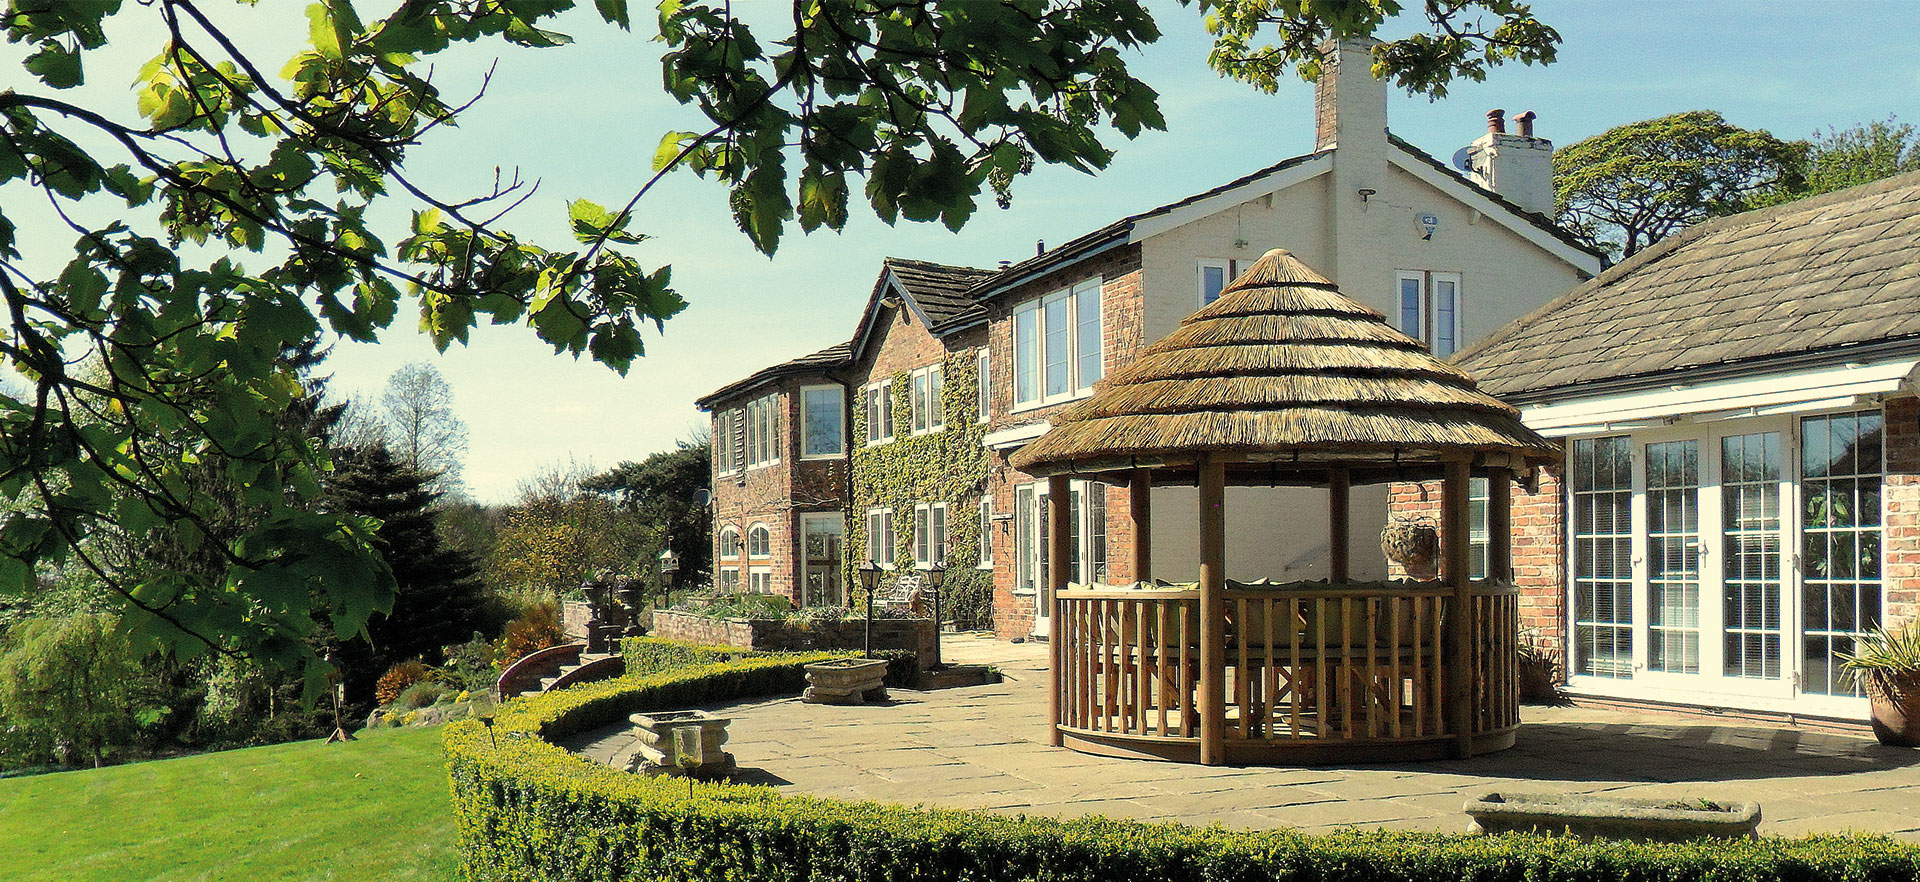 3 metre thatched gazebo on patio of large house